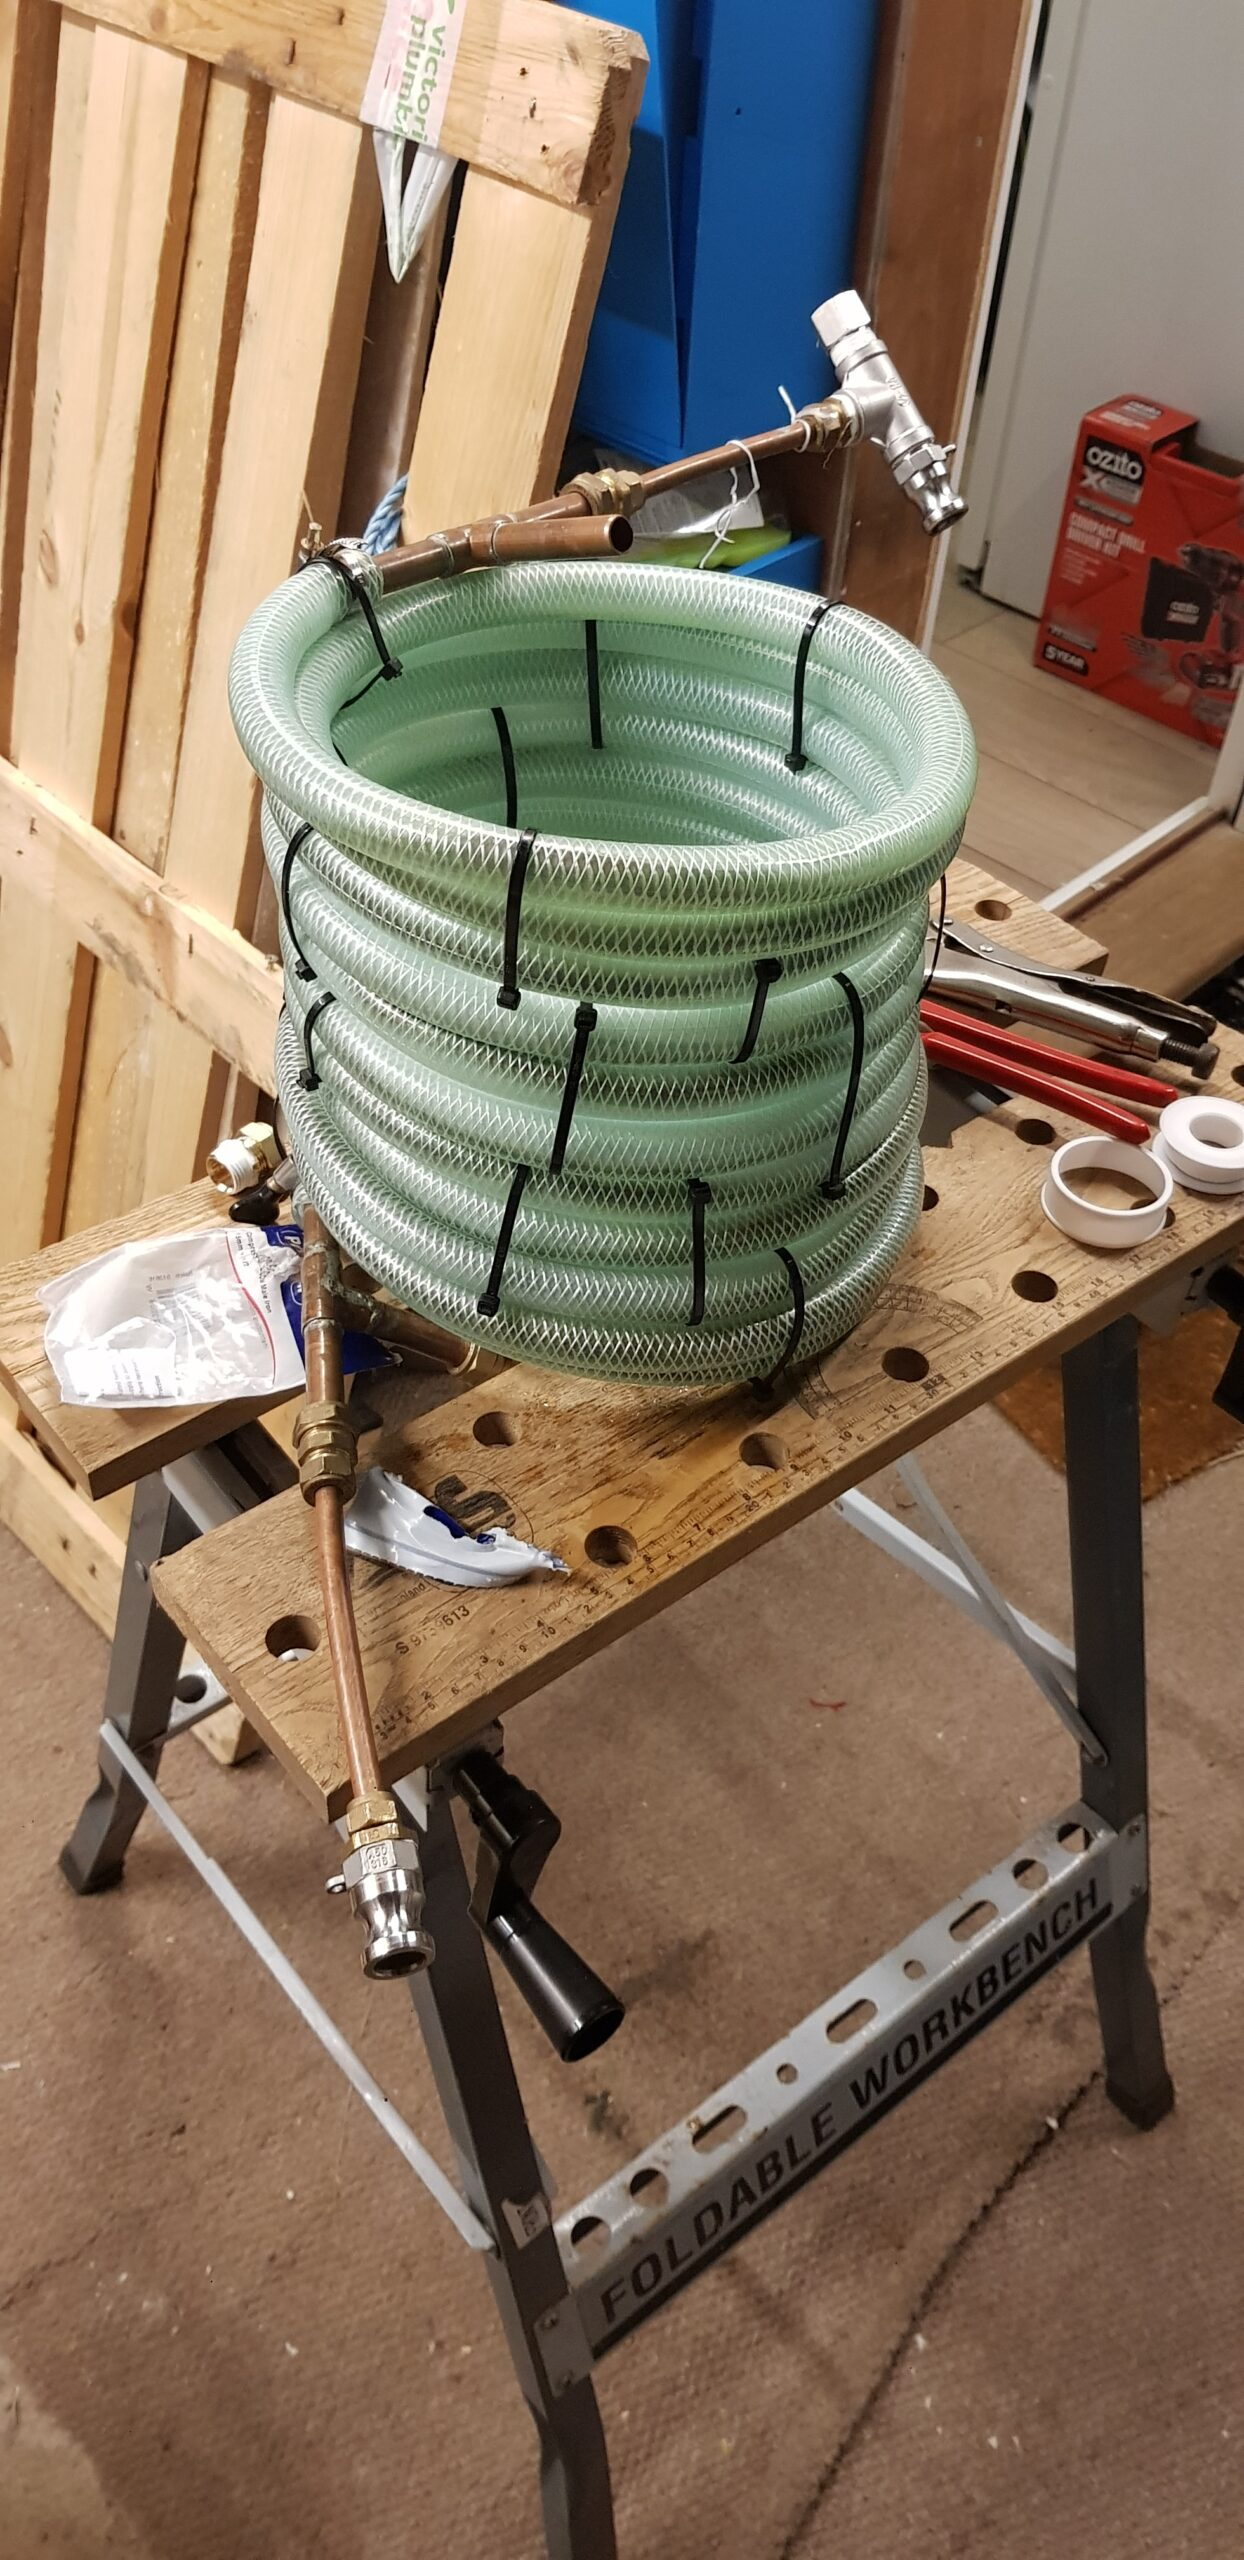 Homemade Counterflow Wort Chiller